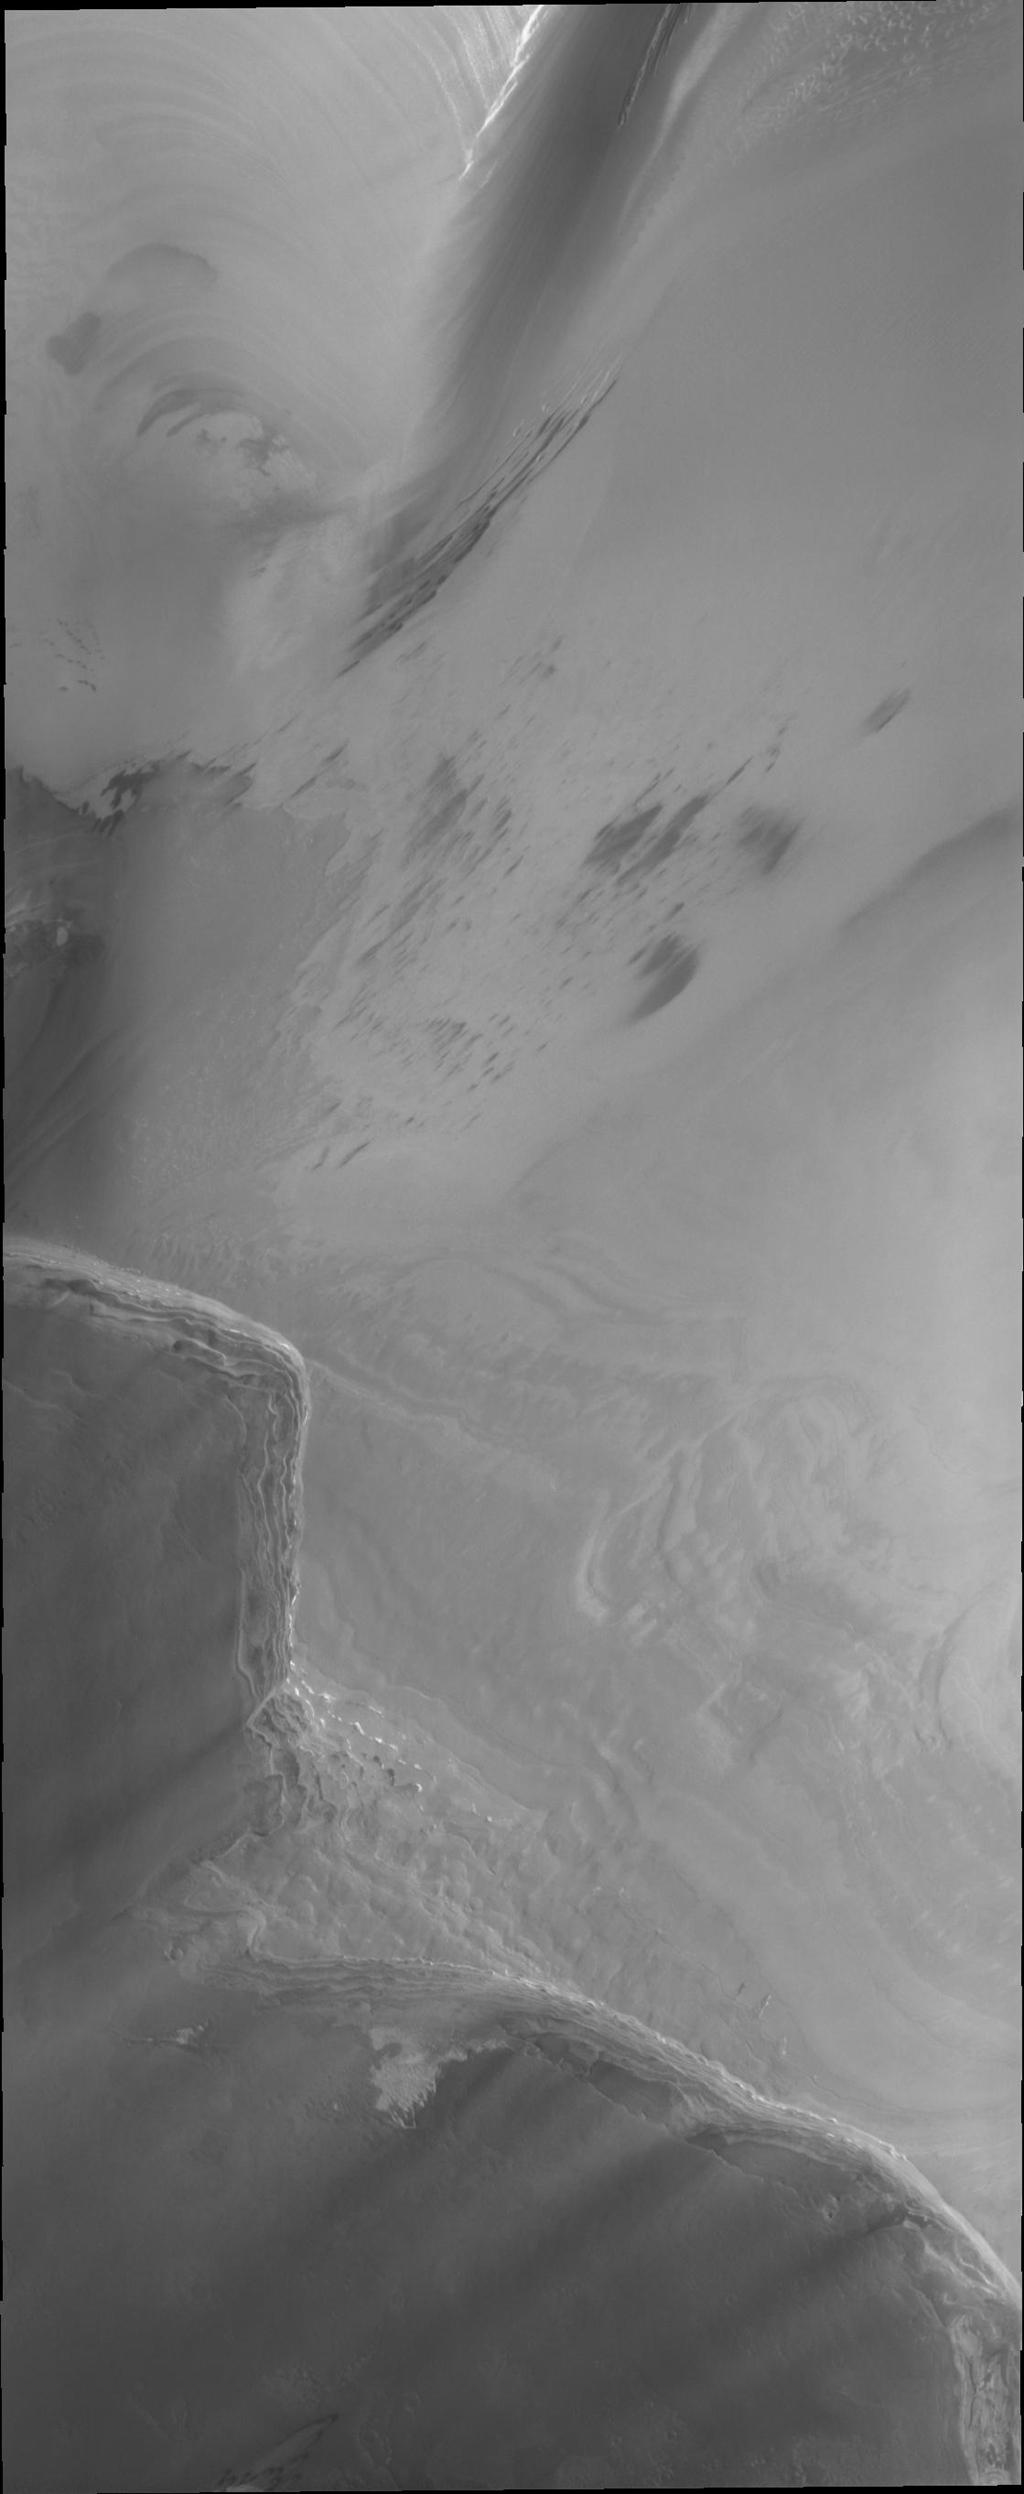 Both polar caps on Mars are composed of many layers of ice and dust. This image from NASA's Mars Odyssey clearly shows the layering of the North polar cap.